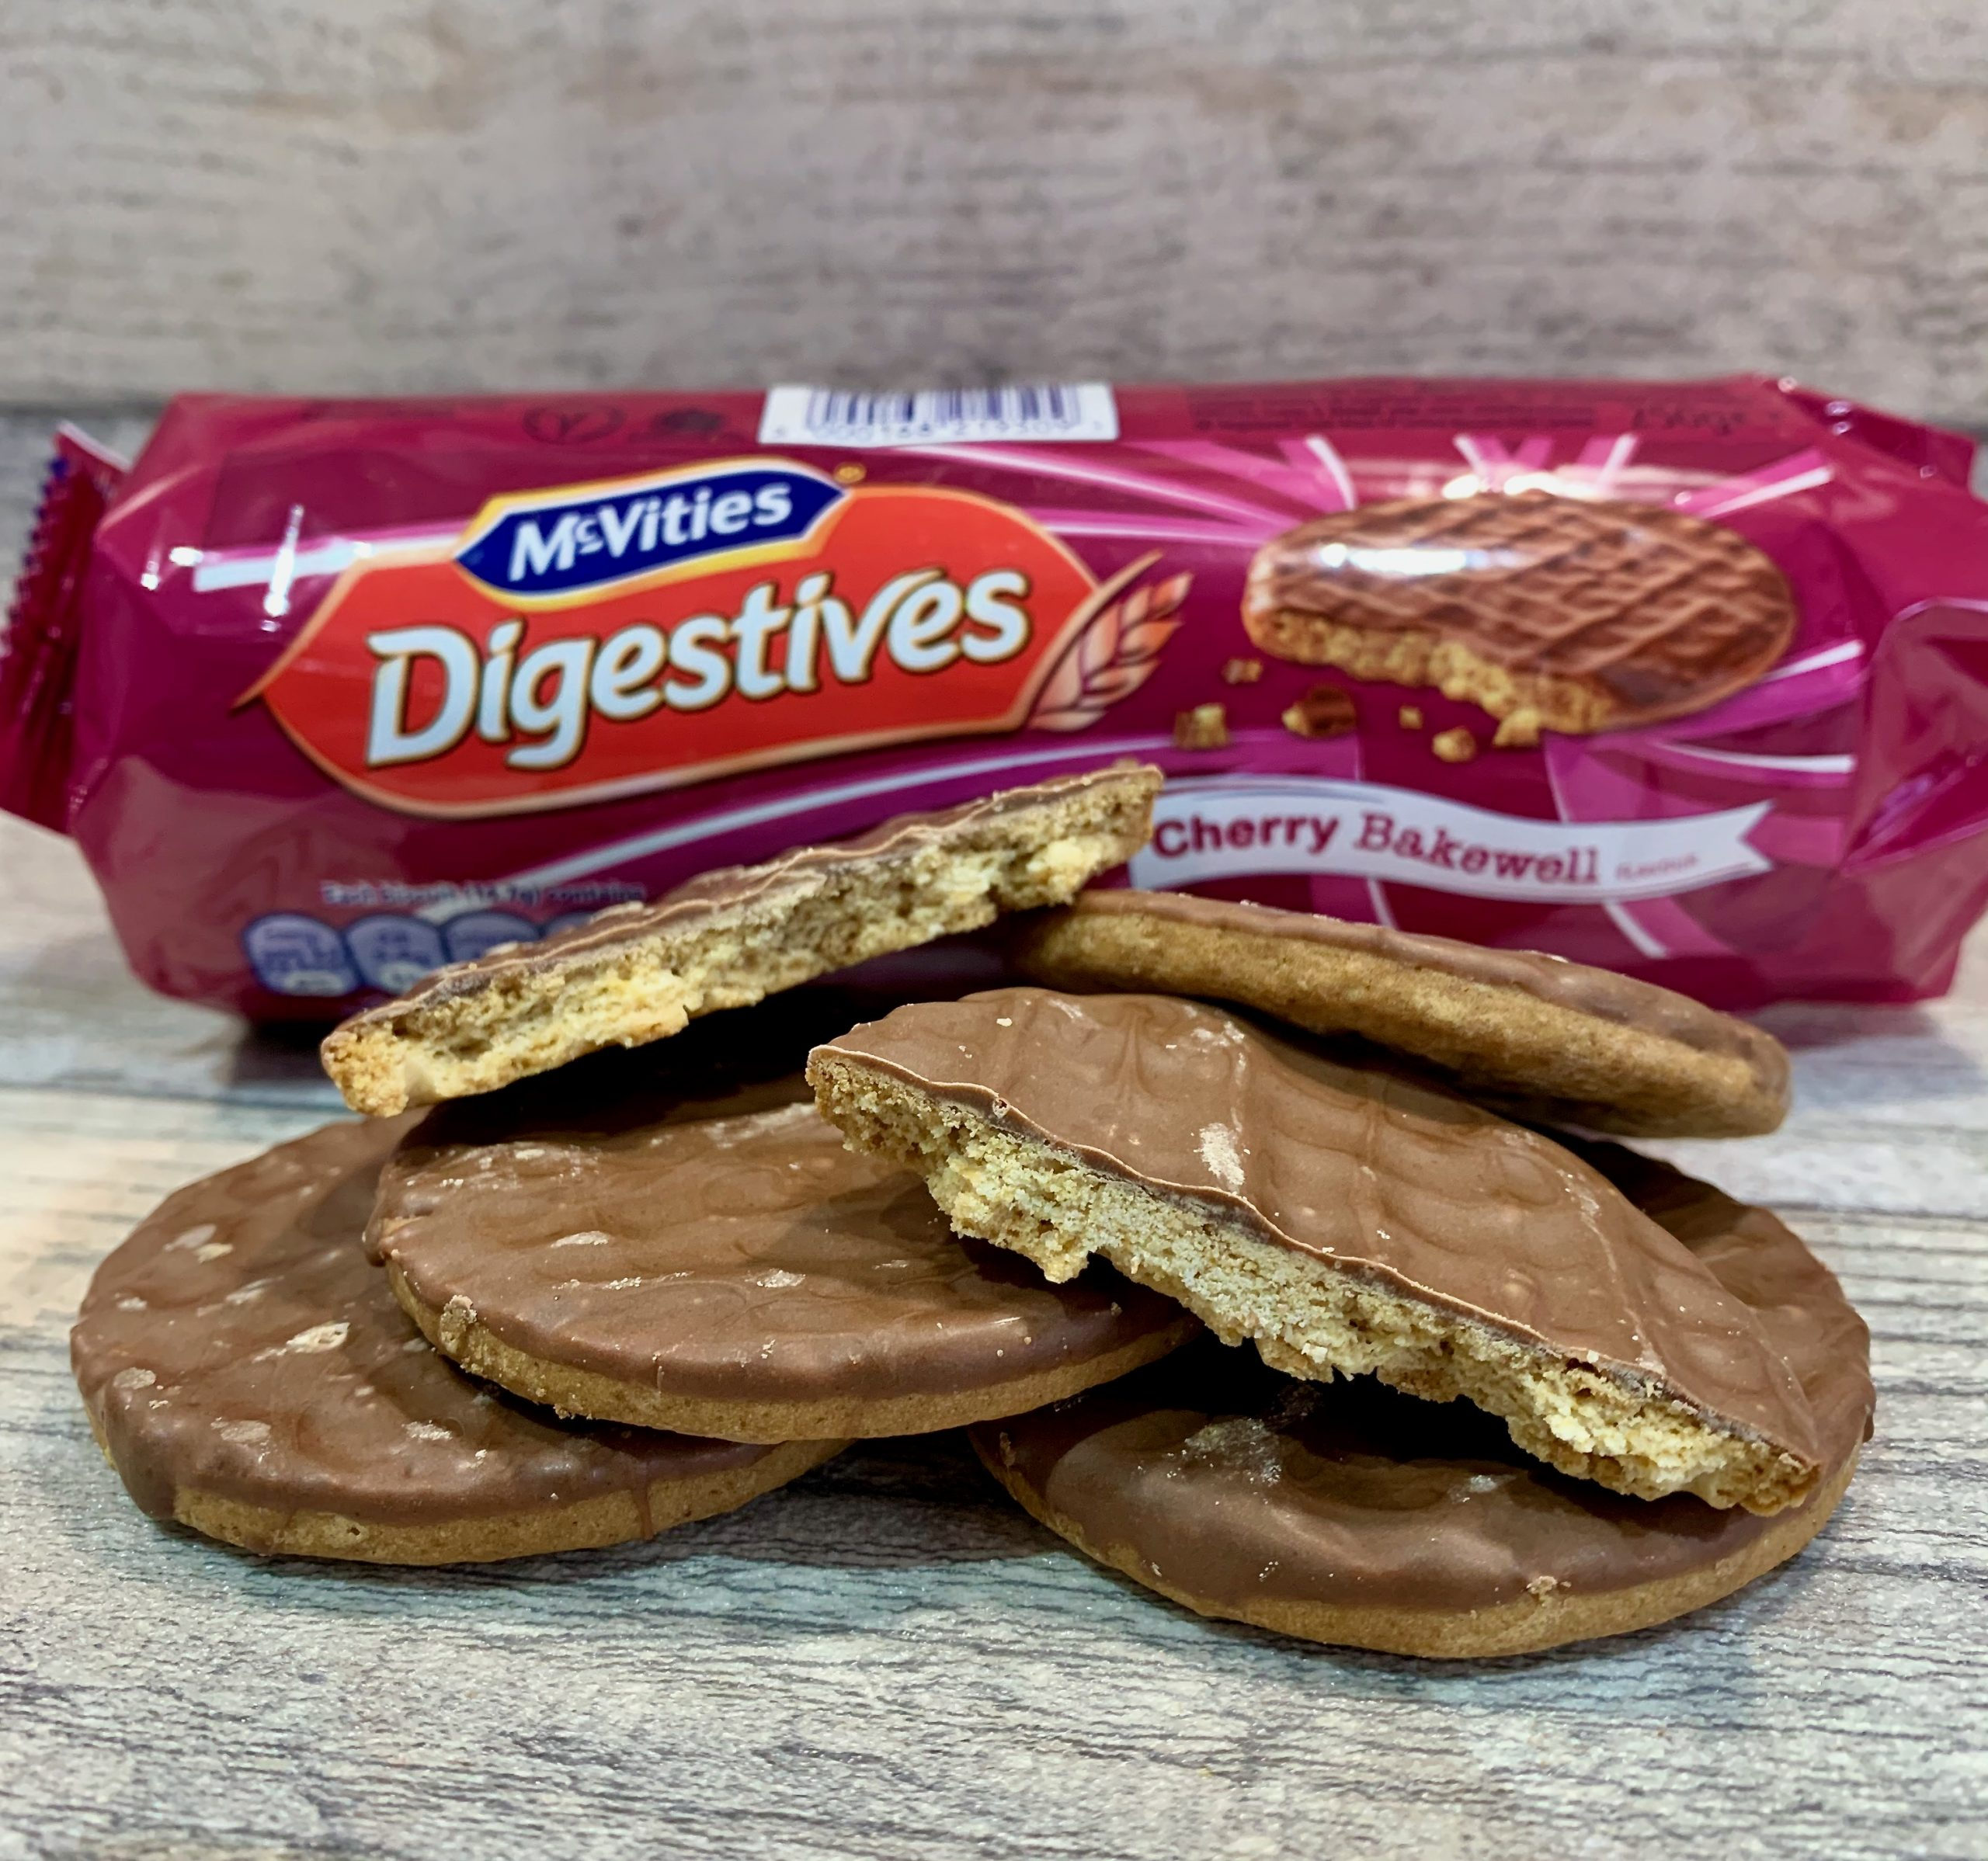 McVities Cherry Bakewell Digestives Biscuits